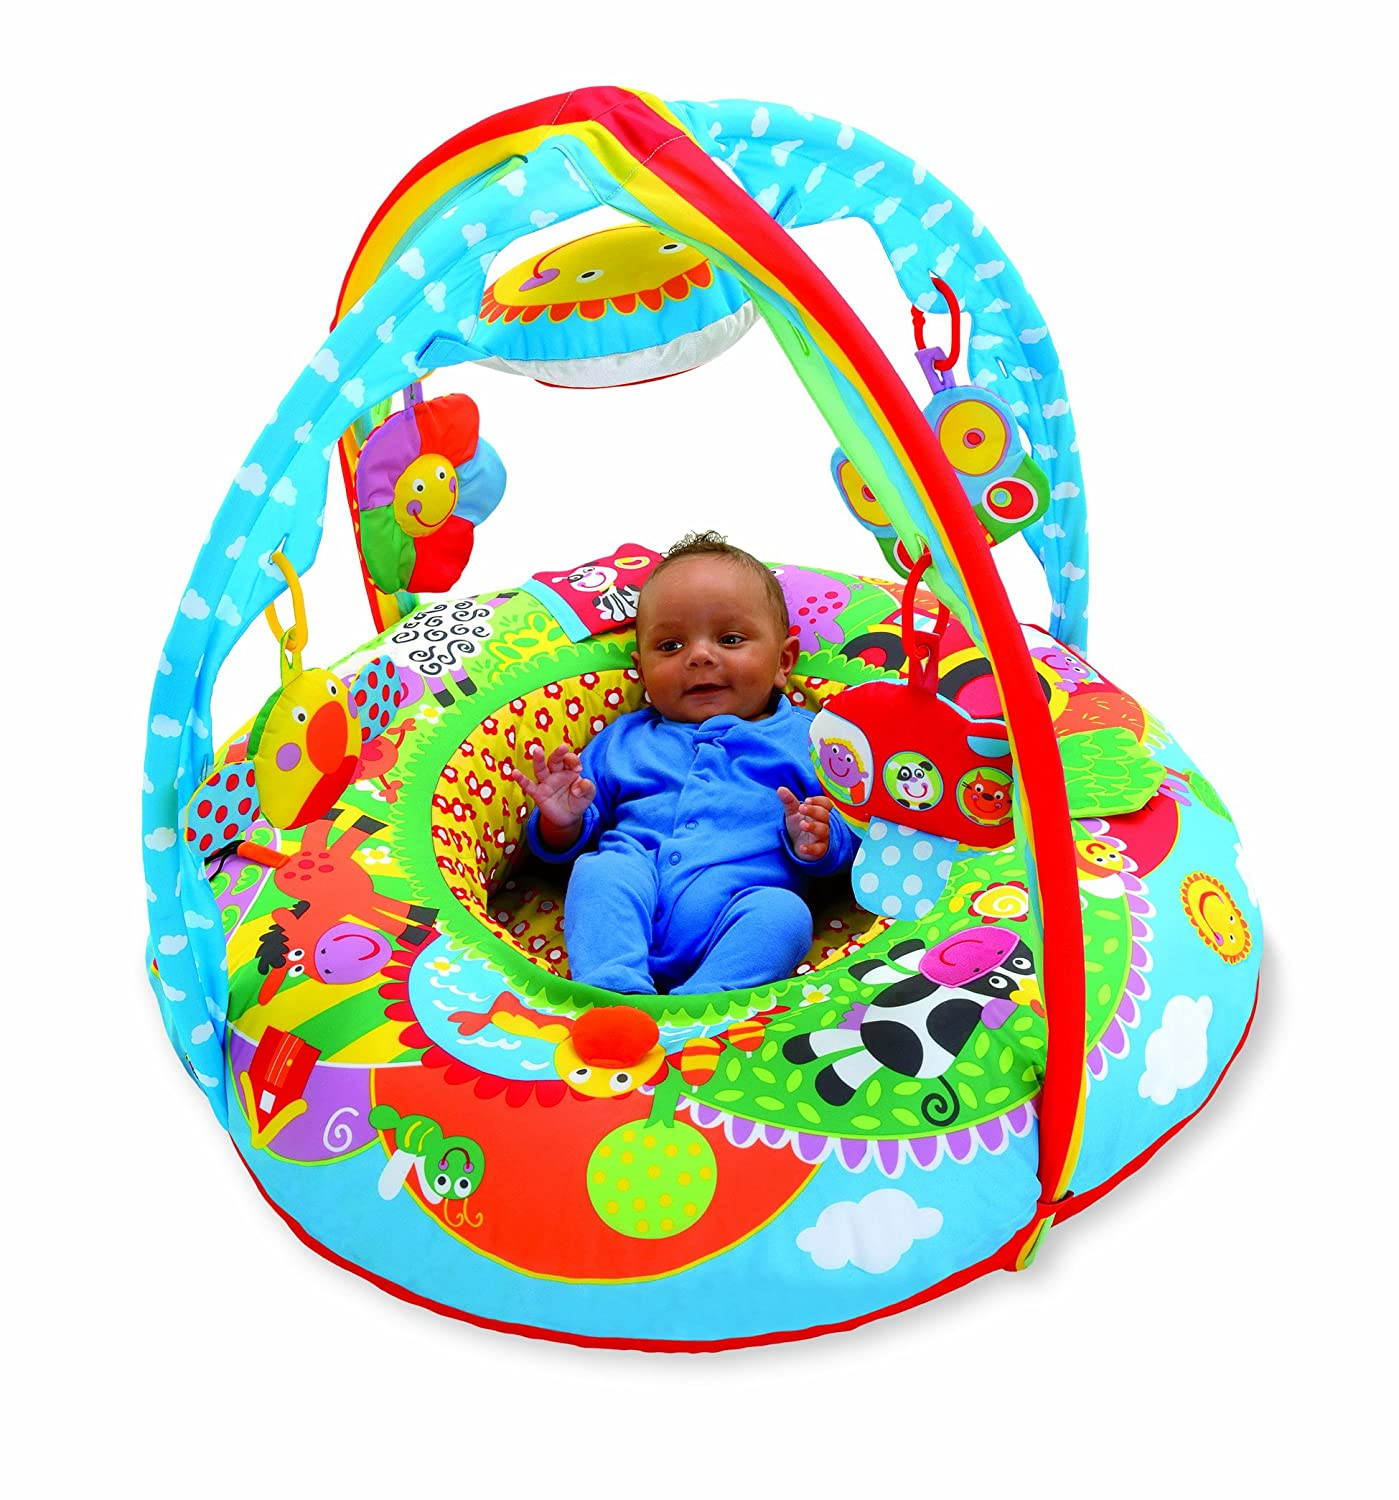 Galt Toys Playnest and Gym Farm Amazon Baby